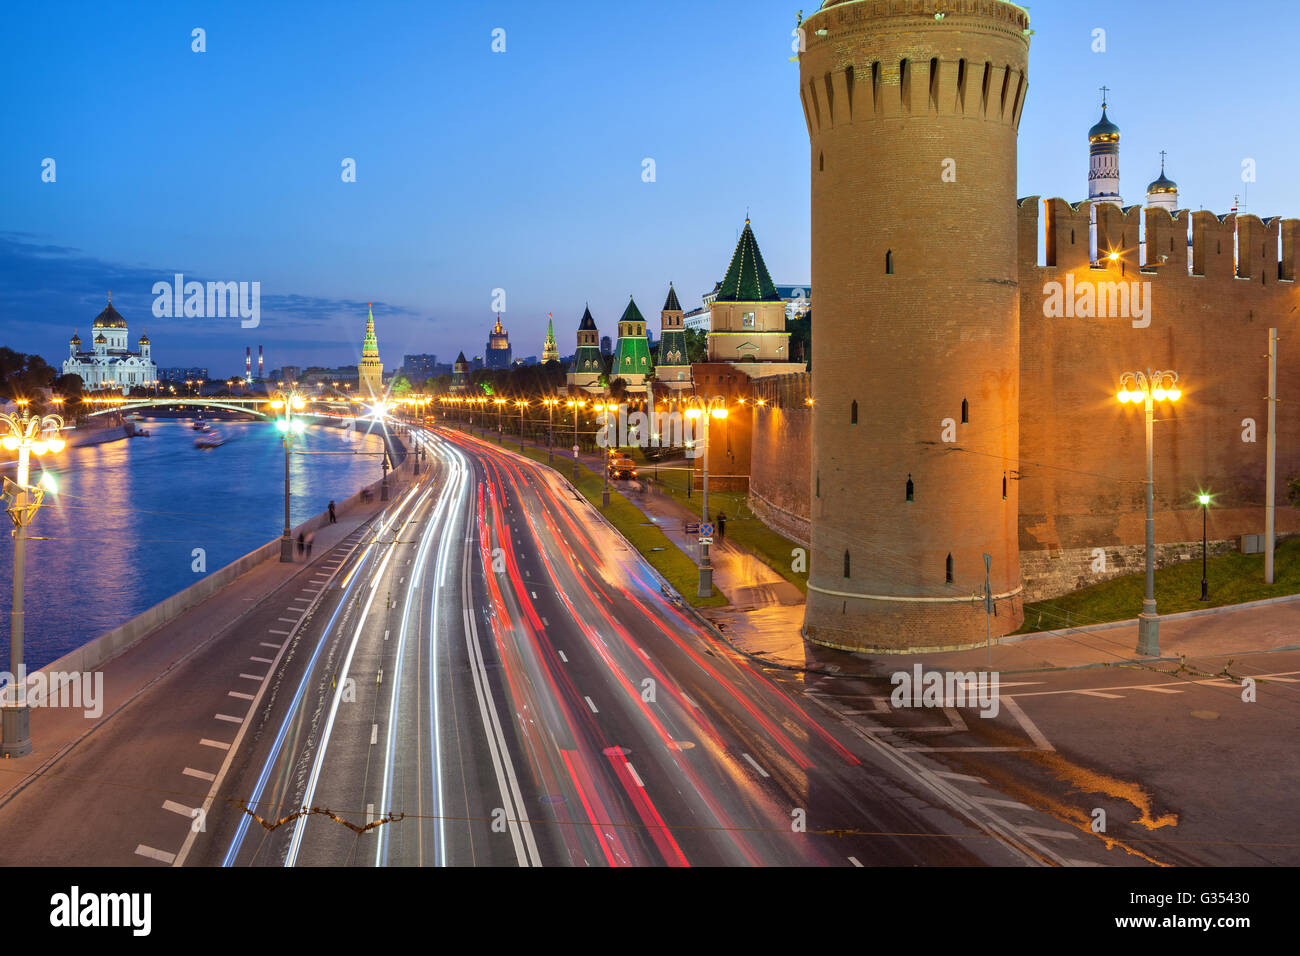 Kremlevskaya naberezhnaya and Kremlin wall in the evening, Moscow, Russia - Stock Image